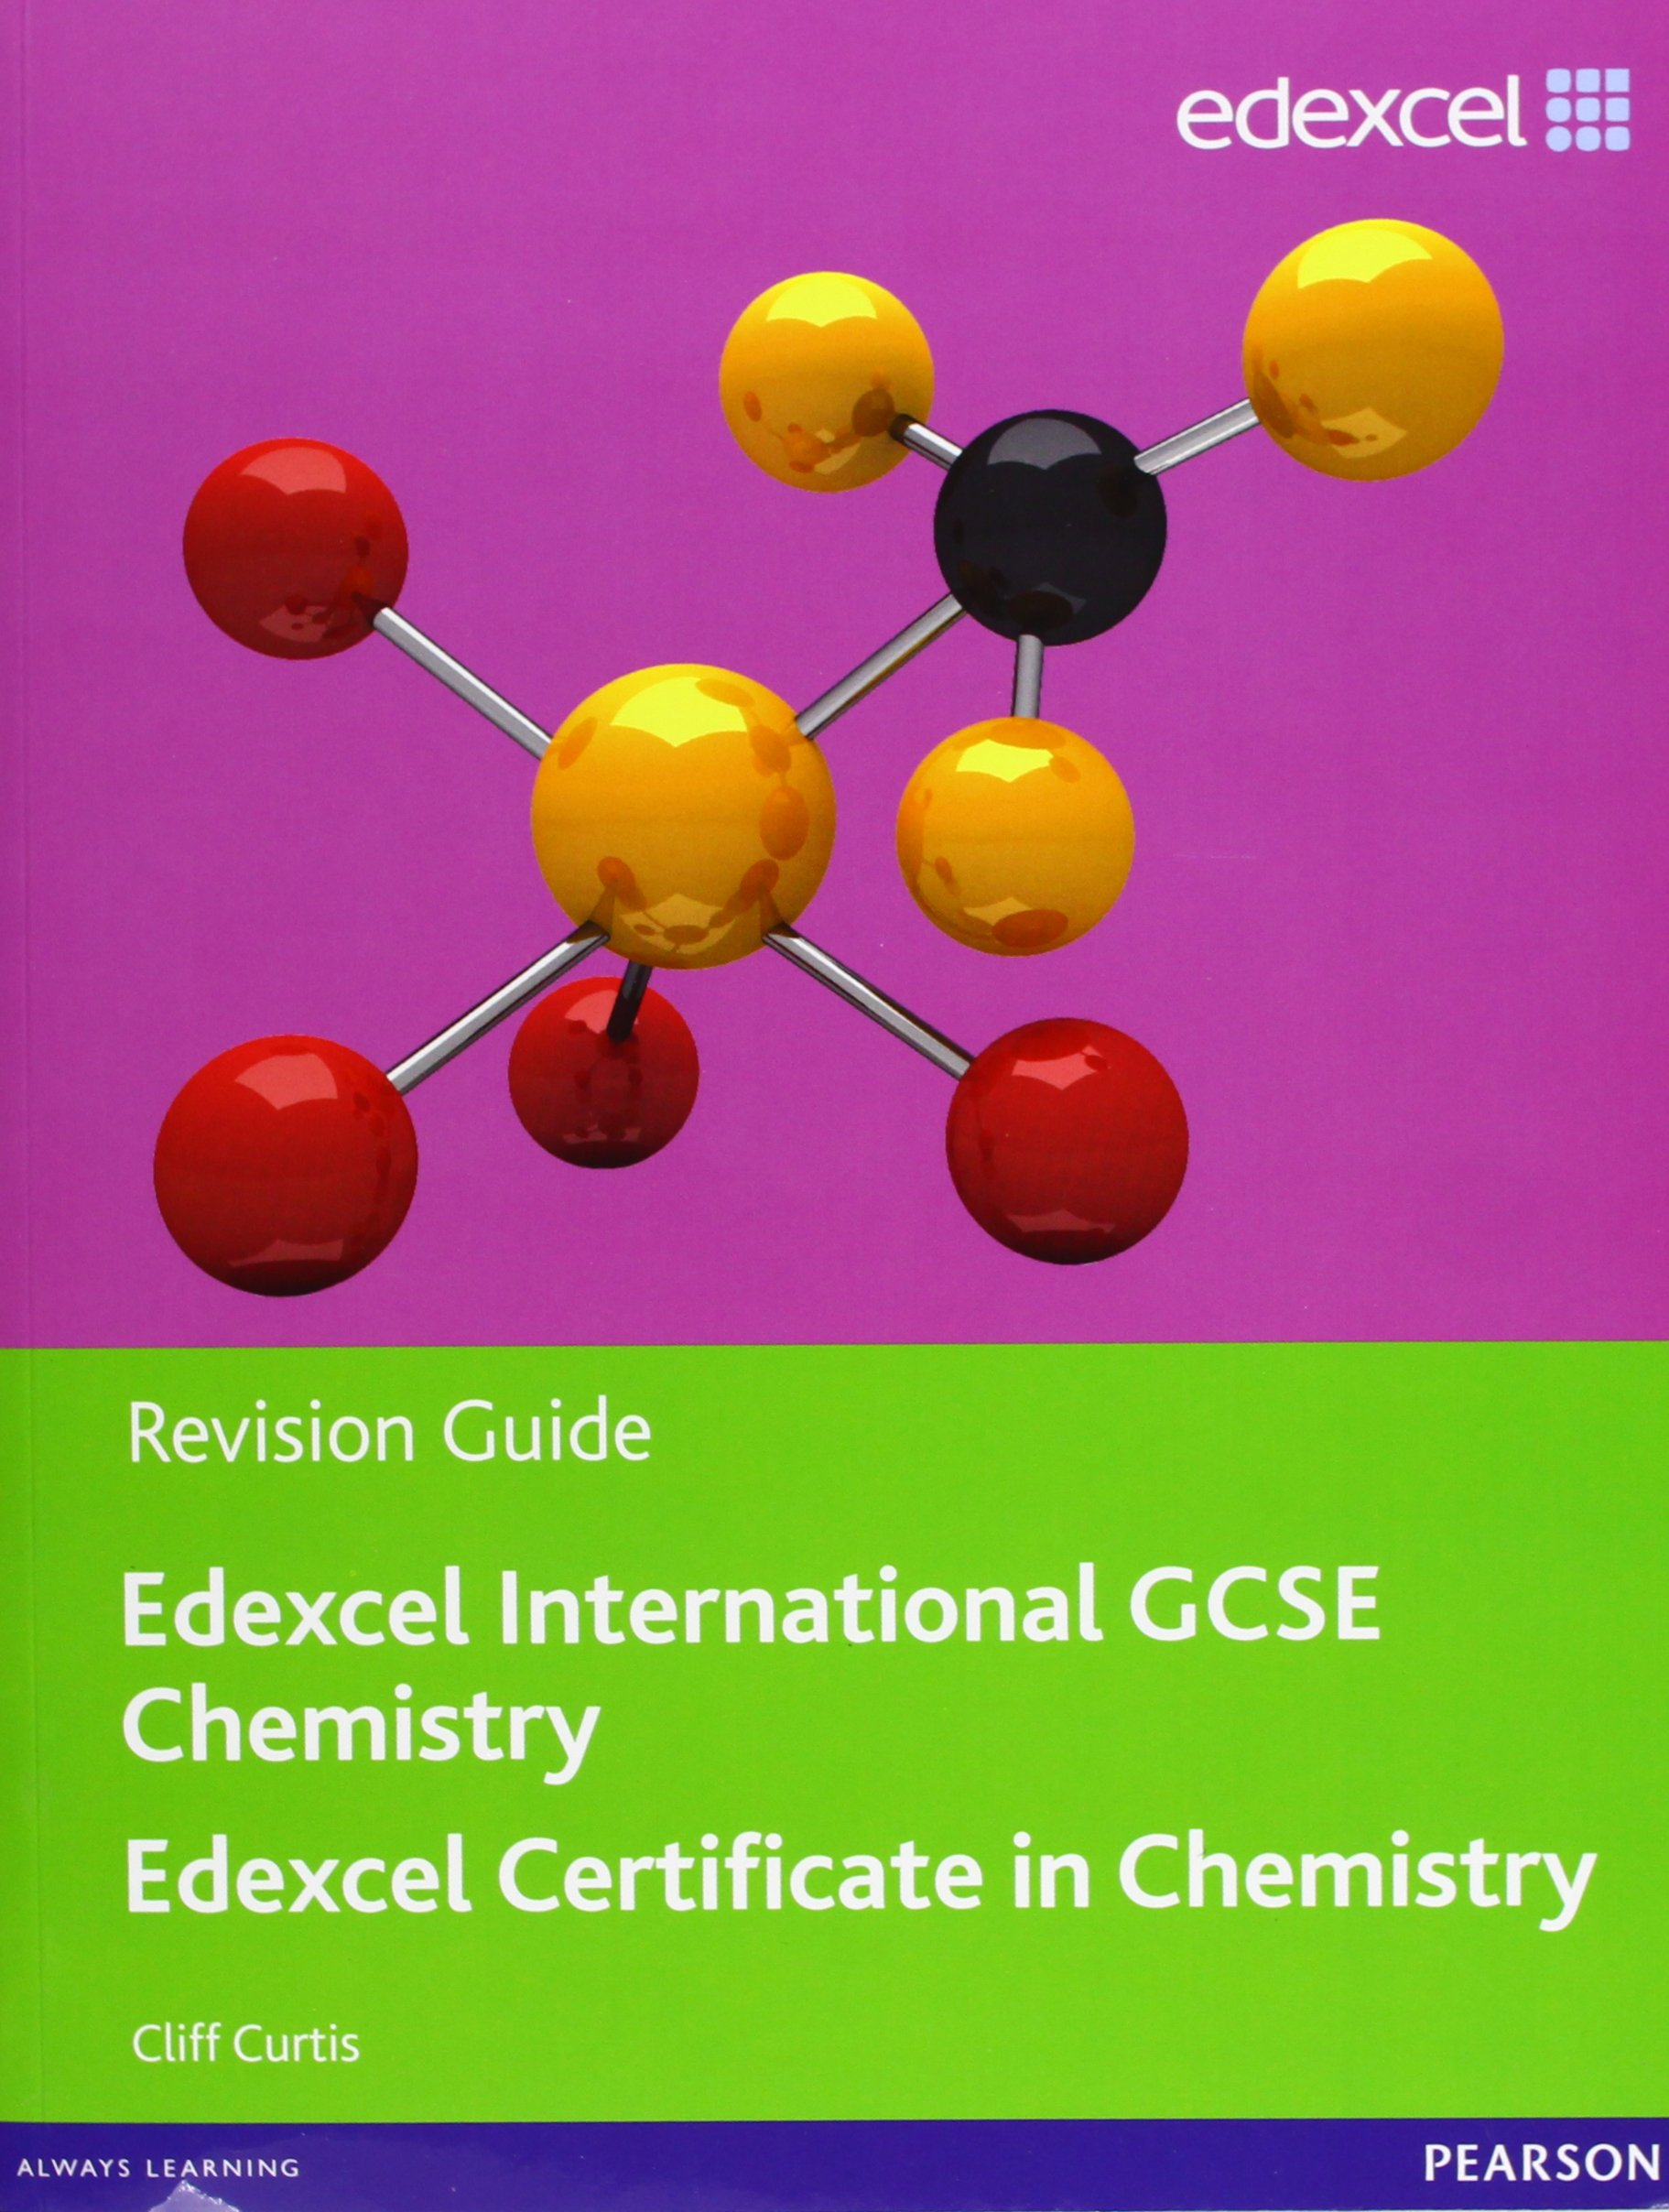 Edexcel International GCSE Chemistry Revision Guide with Student CD:  Amazon.co.uk: Cliff Curtis: Books